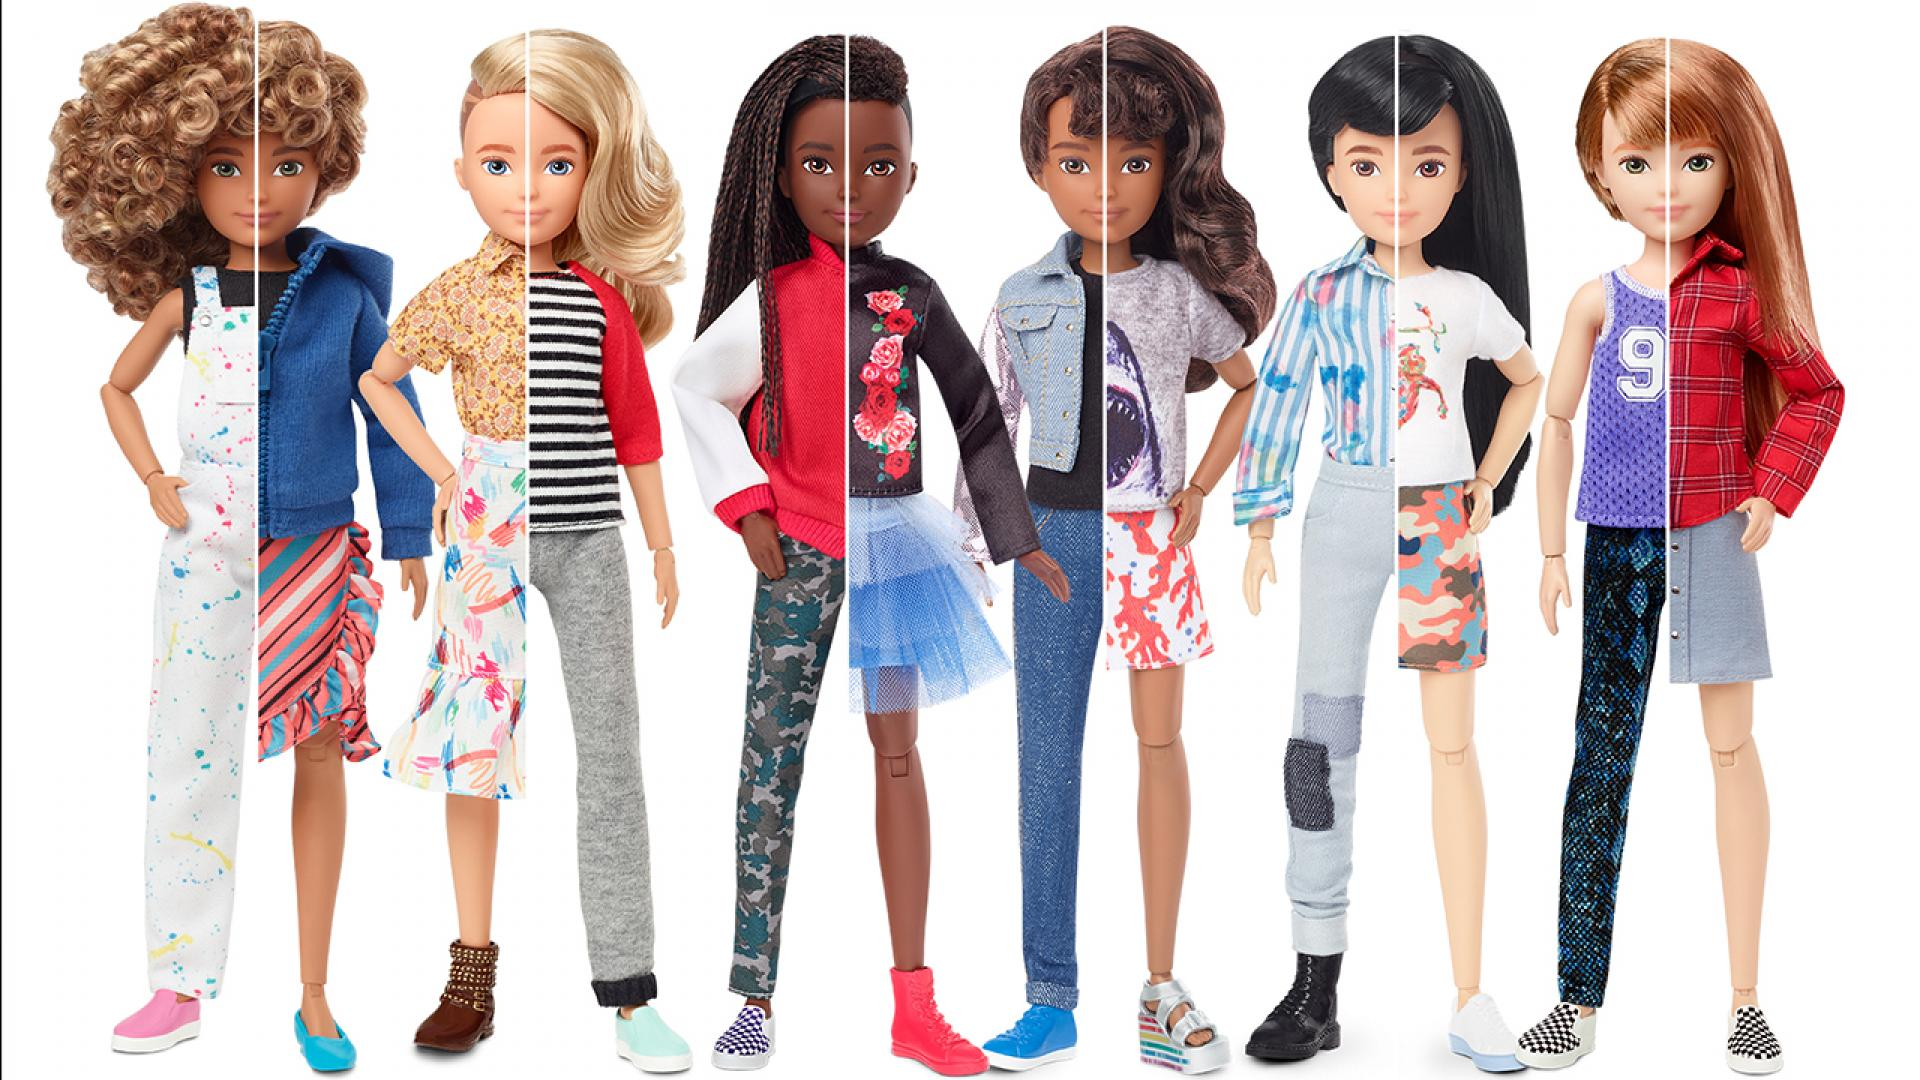 The Creatable World dolls are available in different skin tones and each come with several gender-inclusive accessories.